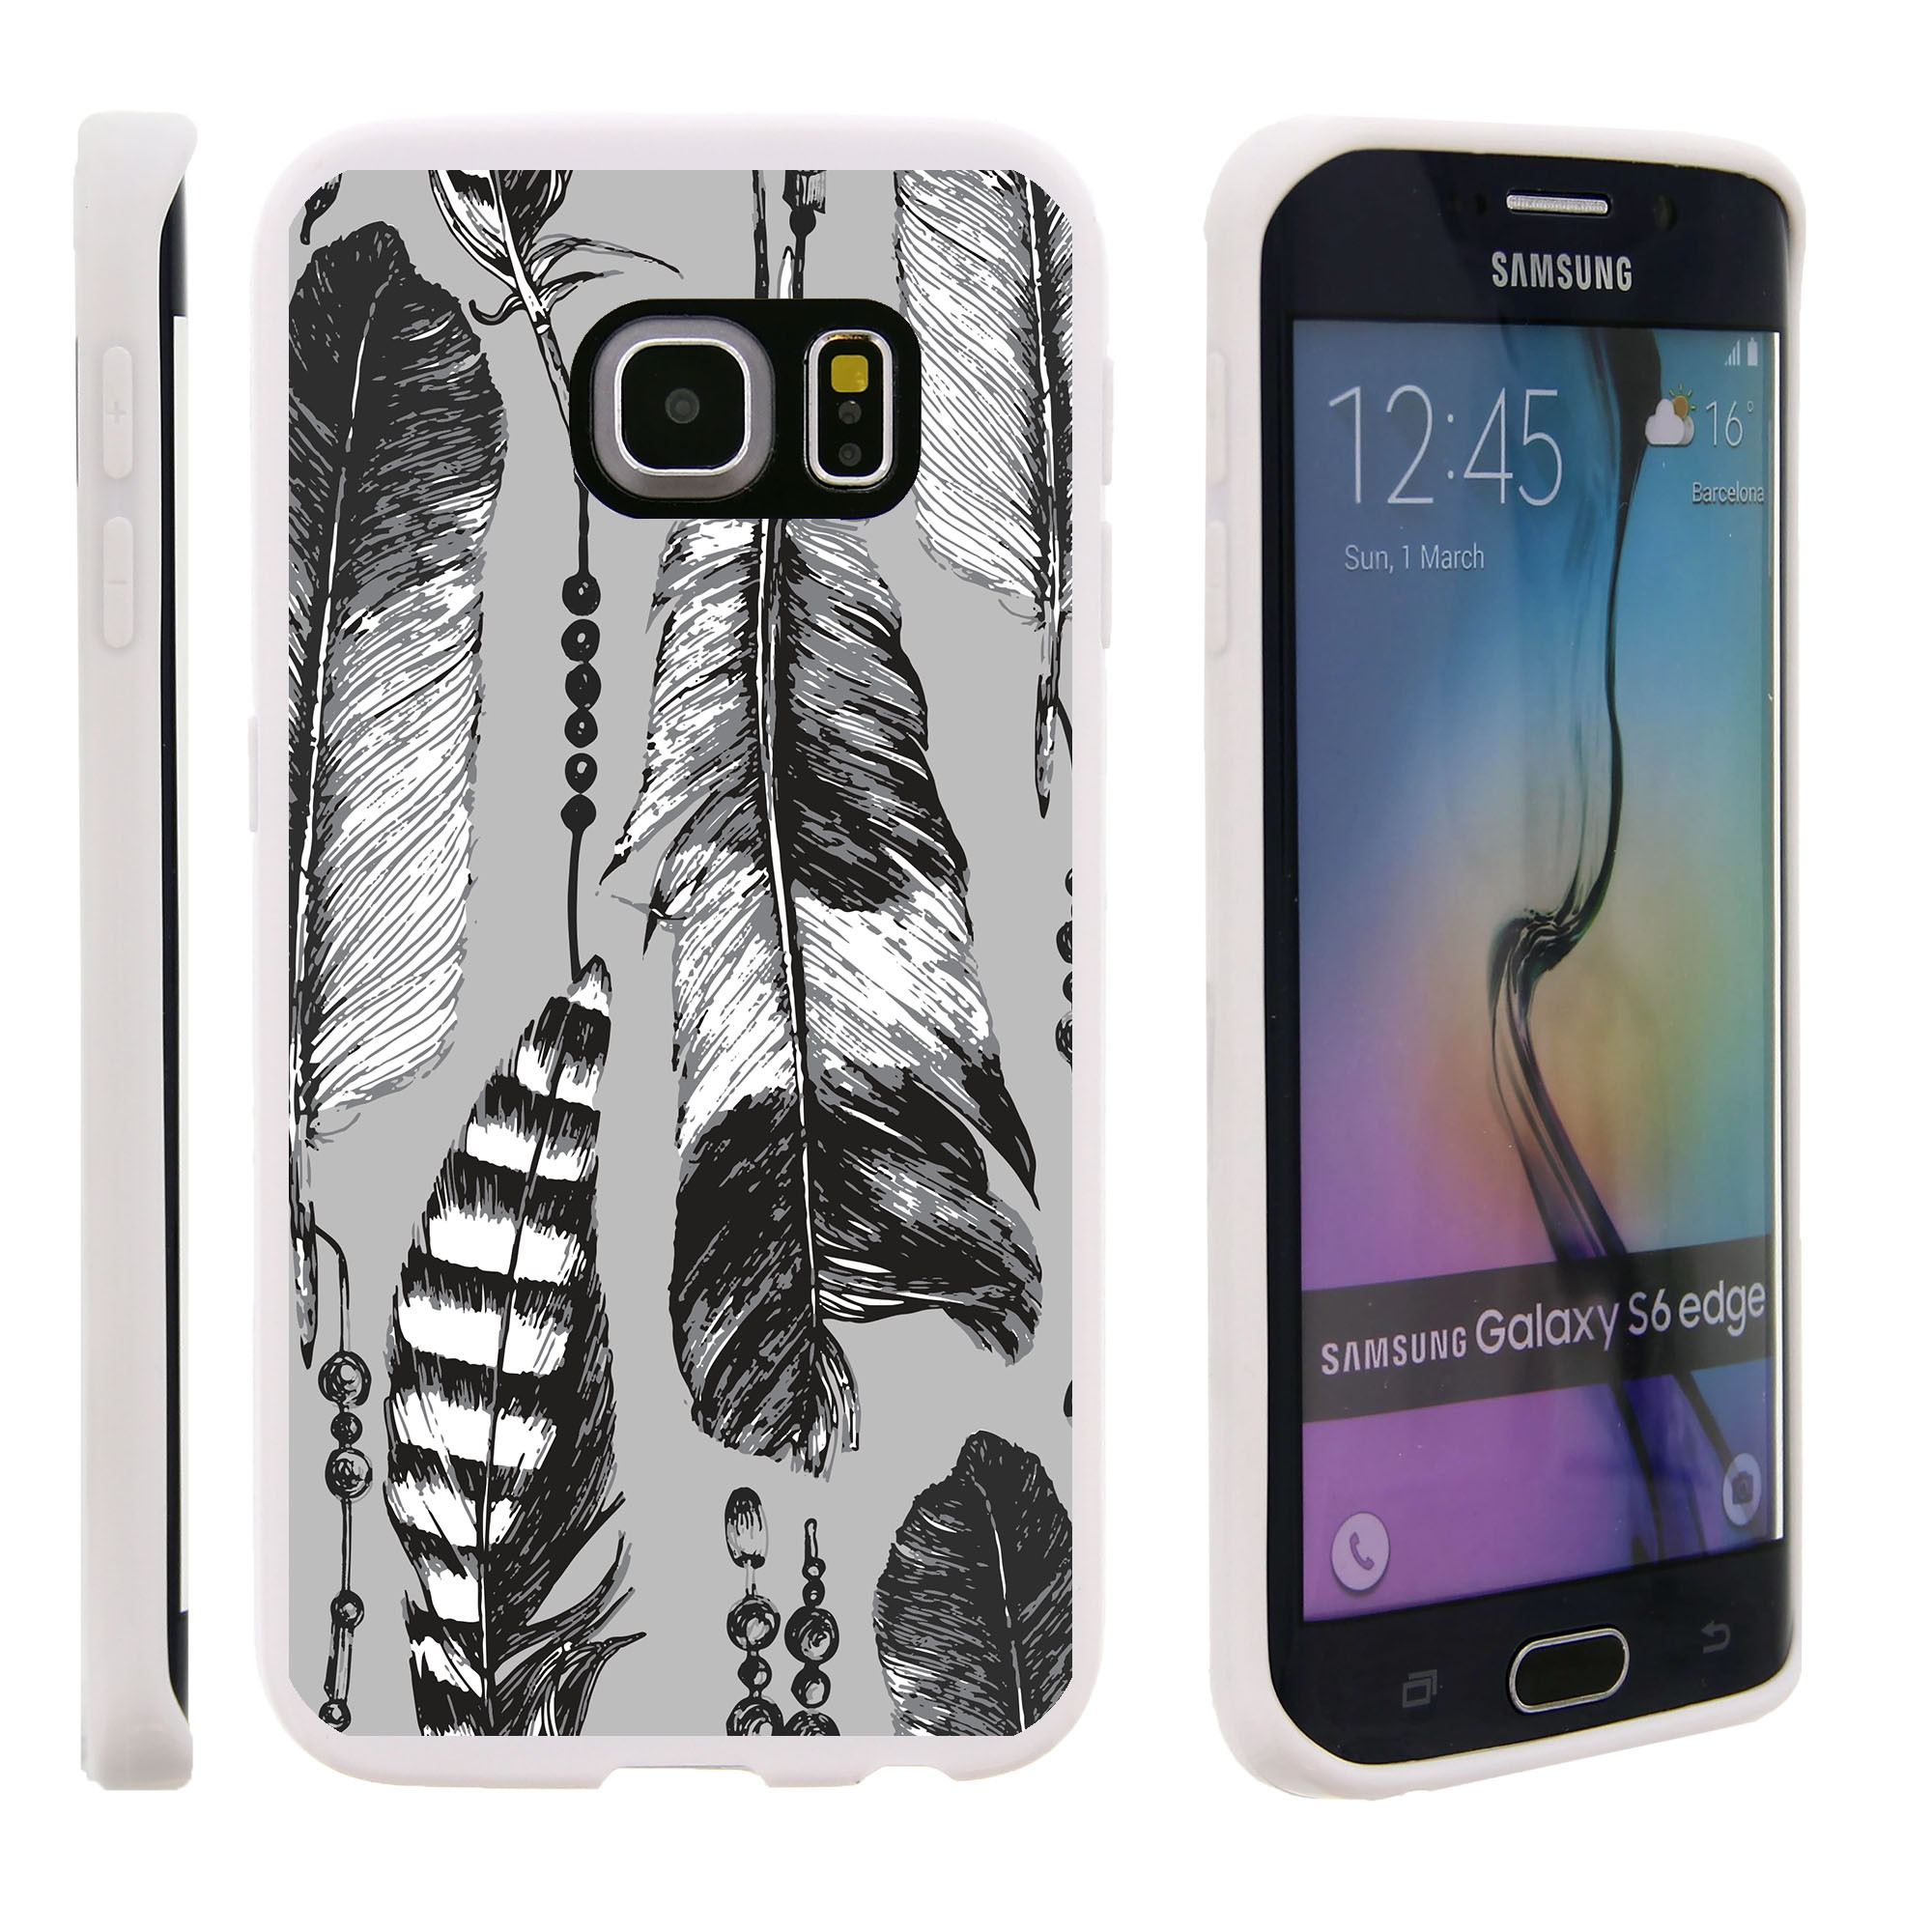 Samsung Galaxy S6 Edge G925, Flexible Case [FLEX FORCE] Slim Durable TPU Sleek Bumper with Unique Designs - Black and White Feathers